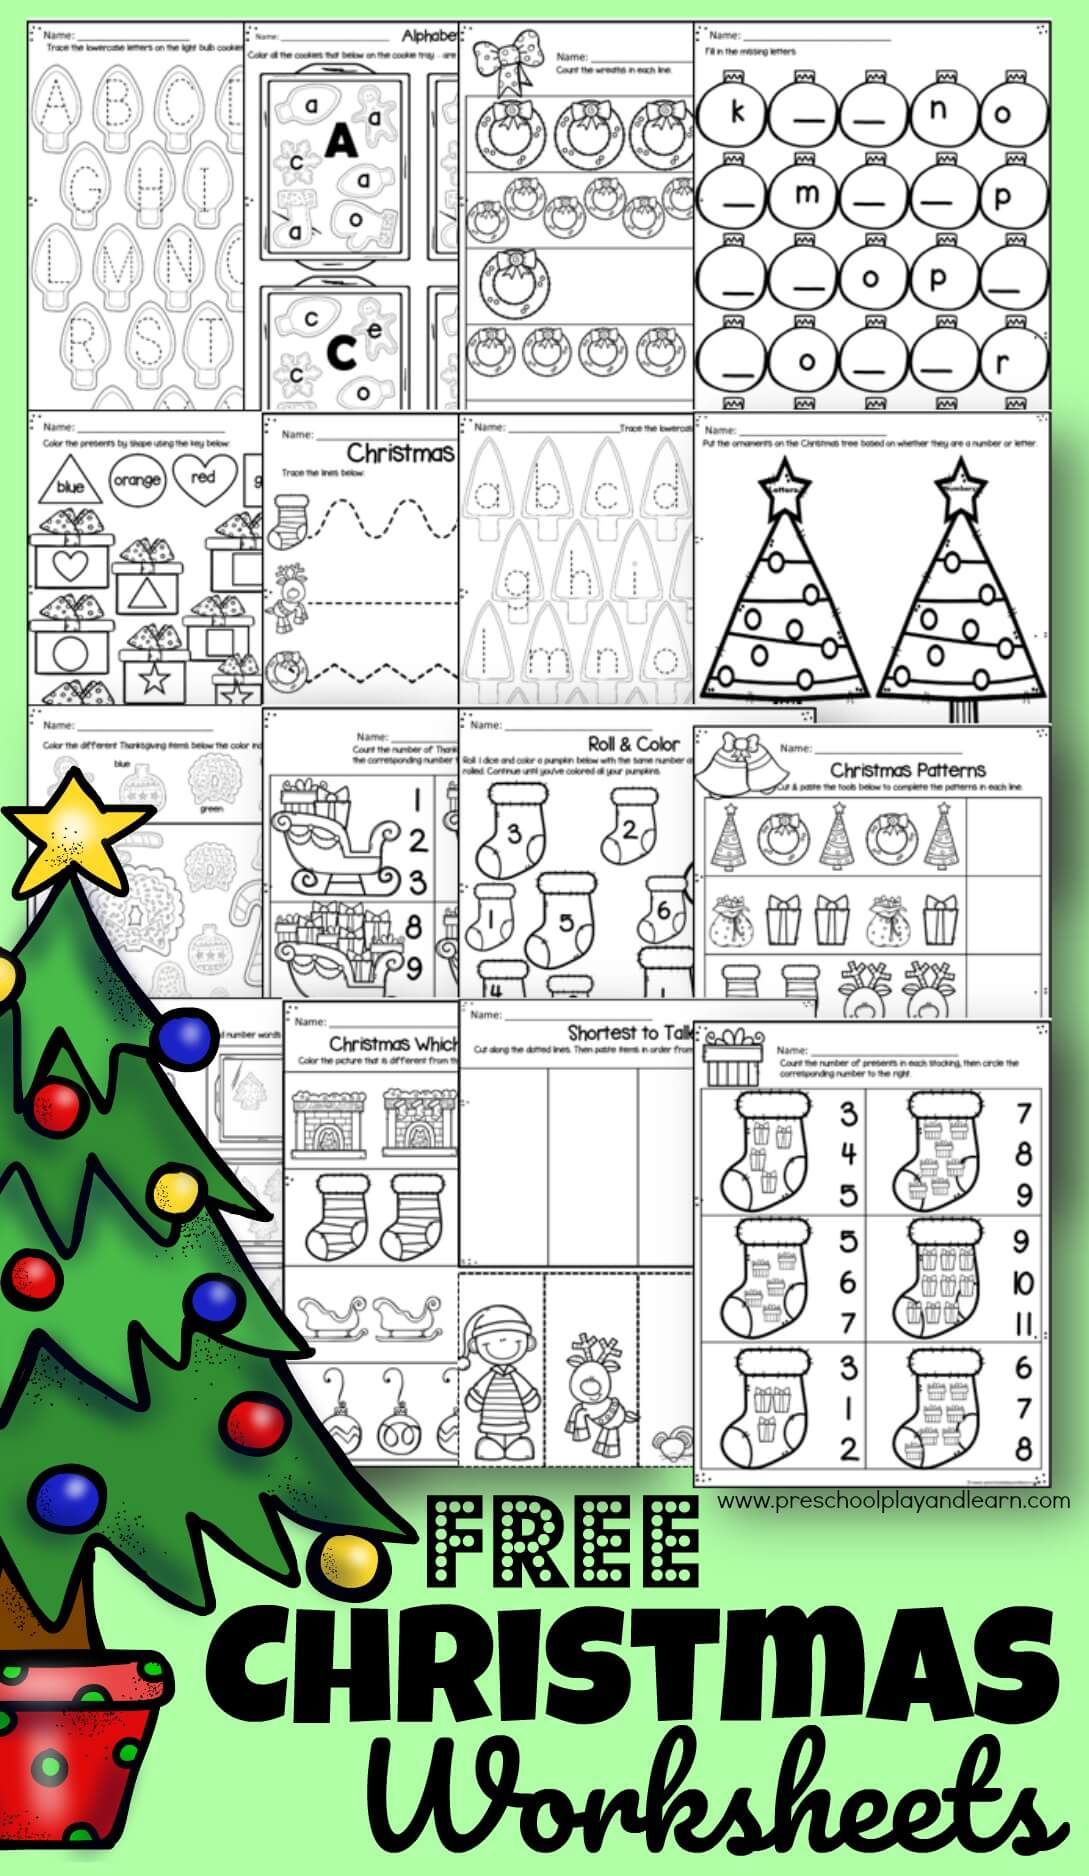 Free Christmas Worksheets For Preschool